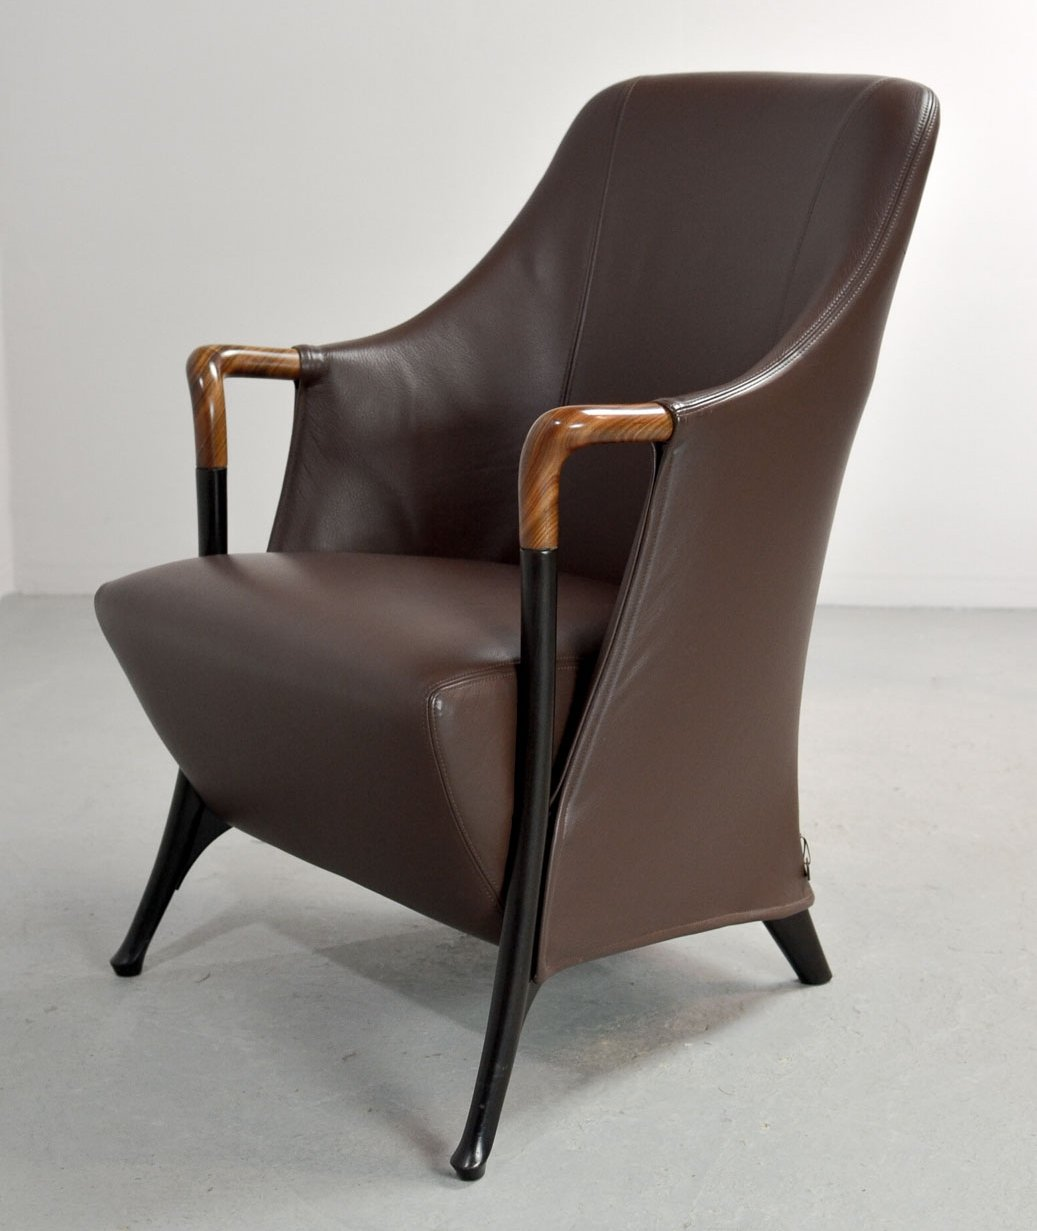 Mid Century Progetti Leather Lounge Chair By Giorgetti, 1980s